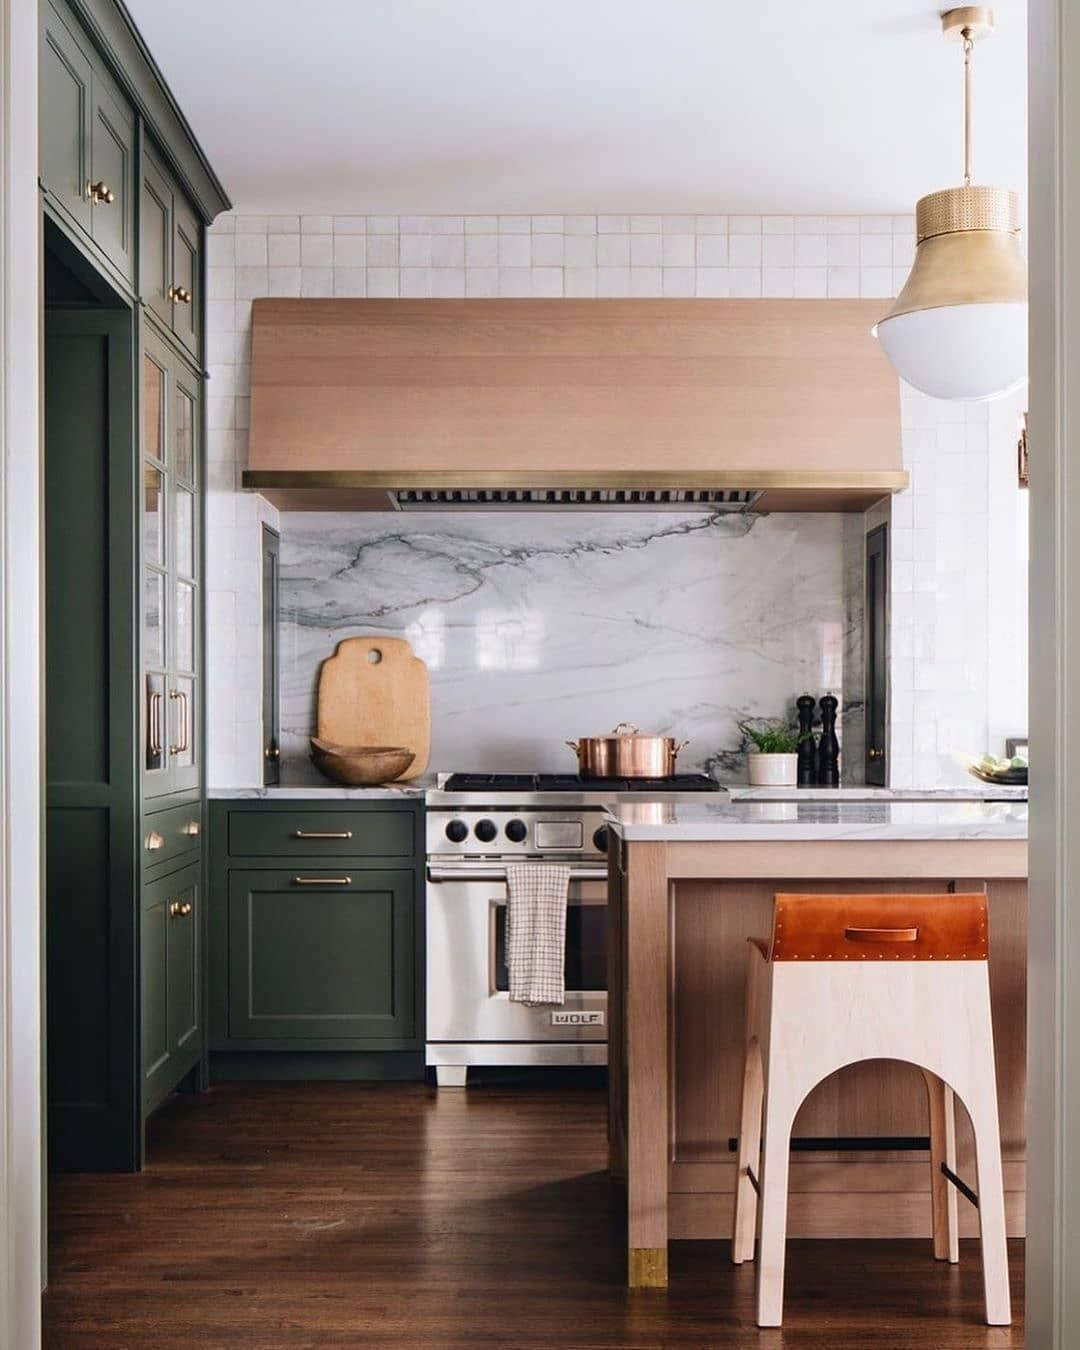 Style Me Pretty Living On Instagram One Of Our Other Favorite Kitchens From Jeanstofferdesign Mixed Wood In 2020 Mixed Wood Style Me Pretty Living Favorite Kitchen